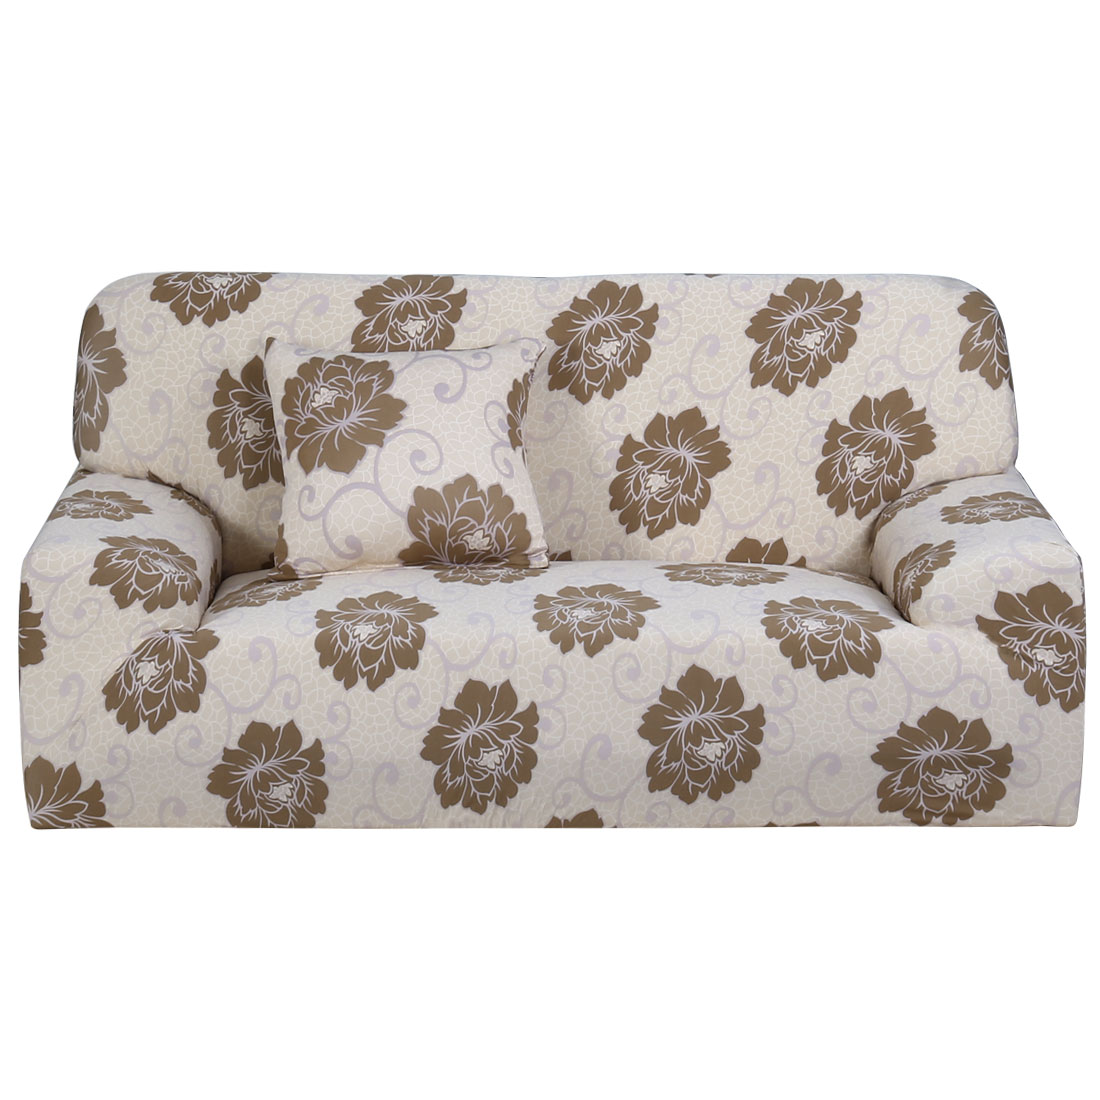 Household Polyester Flower Prints Elastic 3 Seats Sofa Cover Slipcover Protector 74''-90''